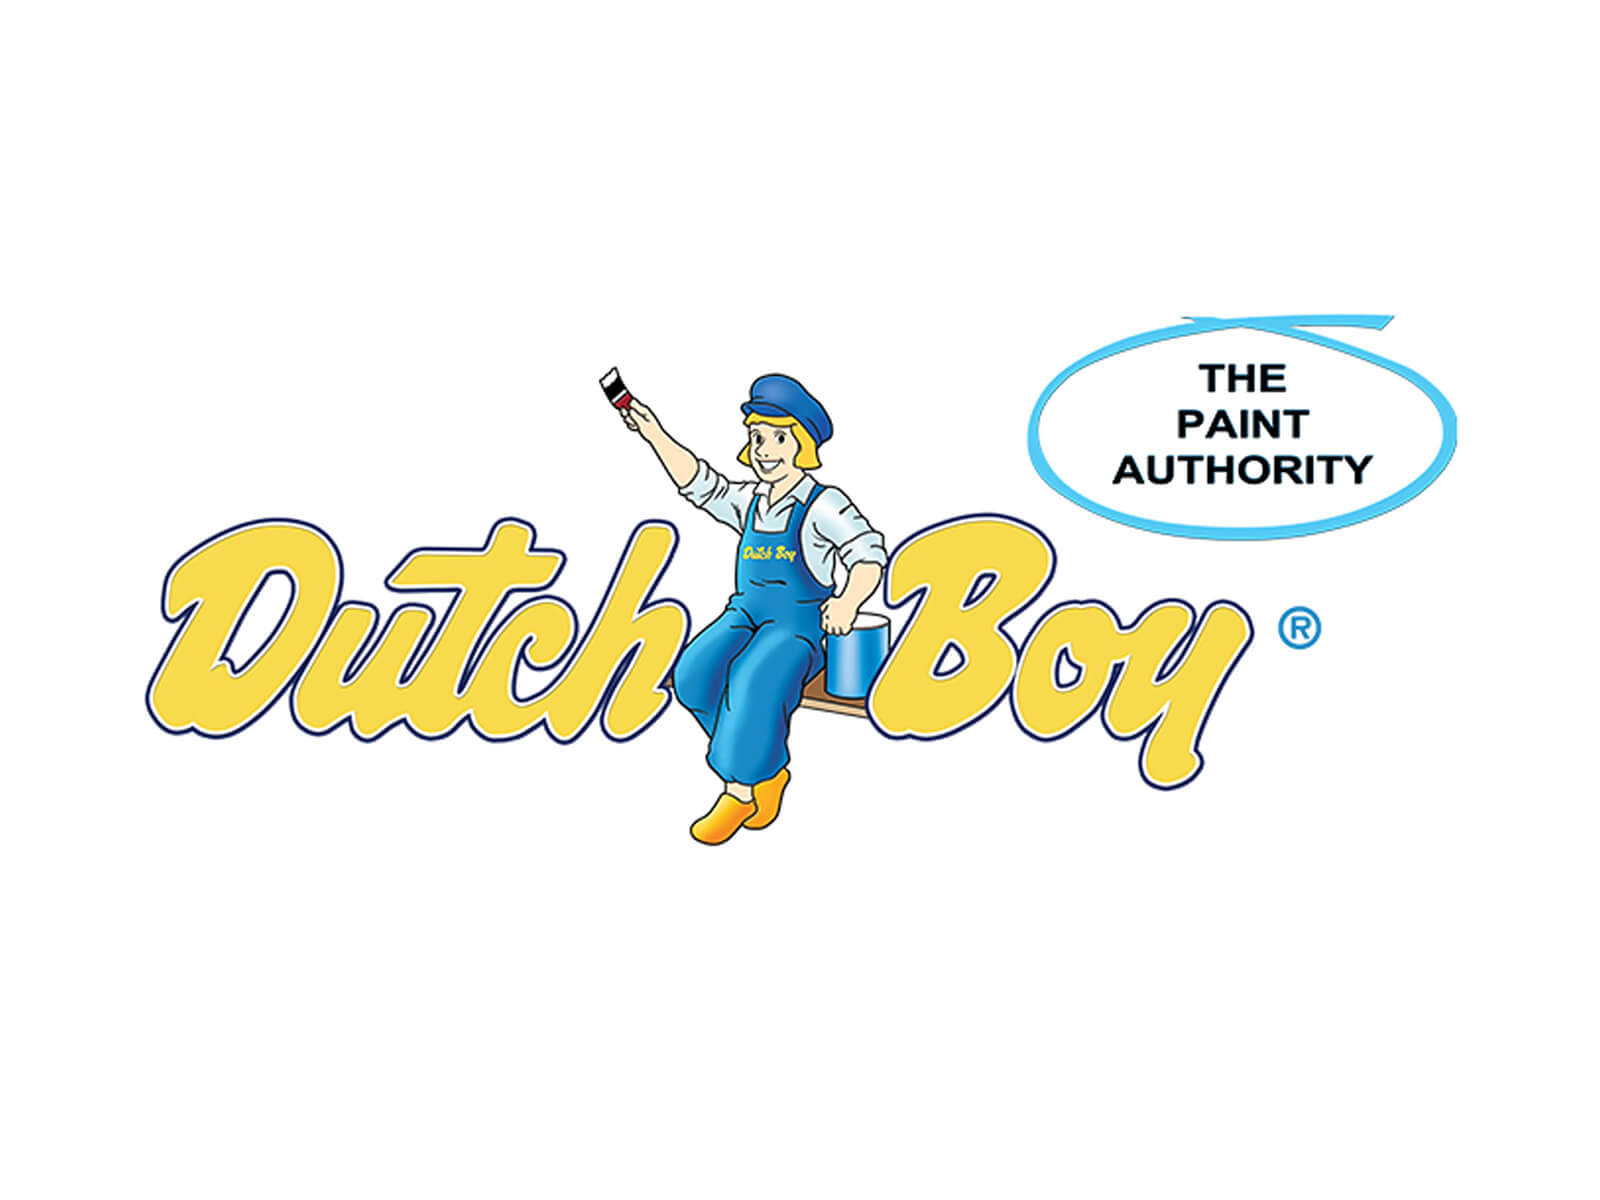 Dutchboy